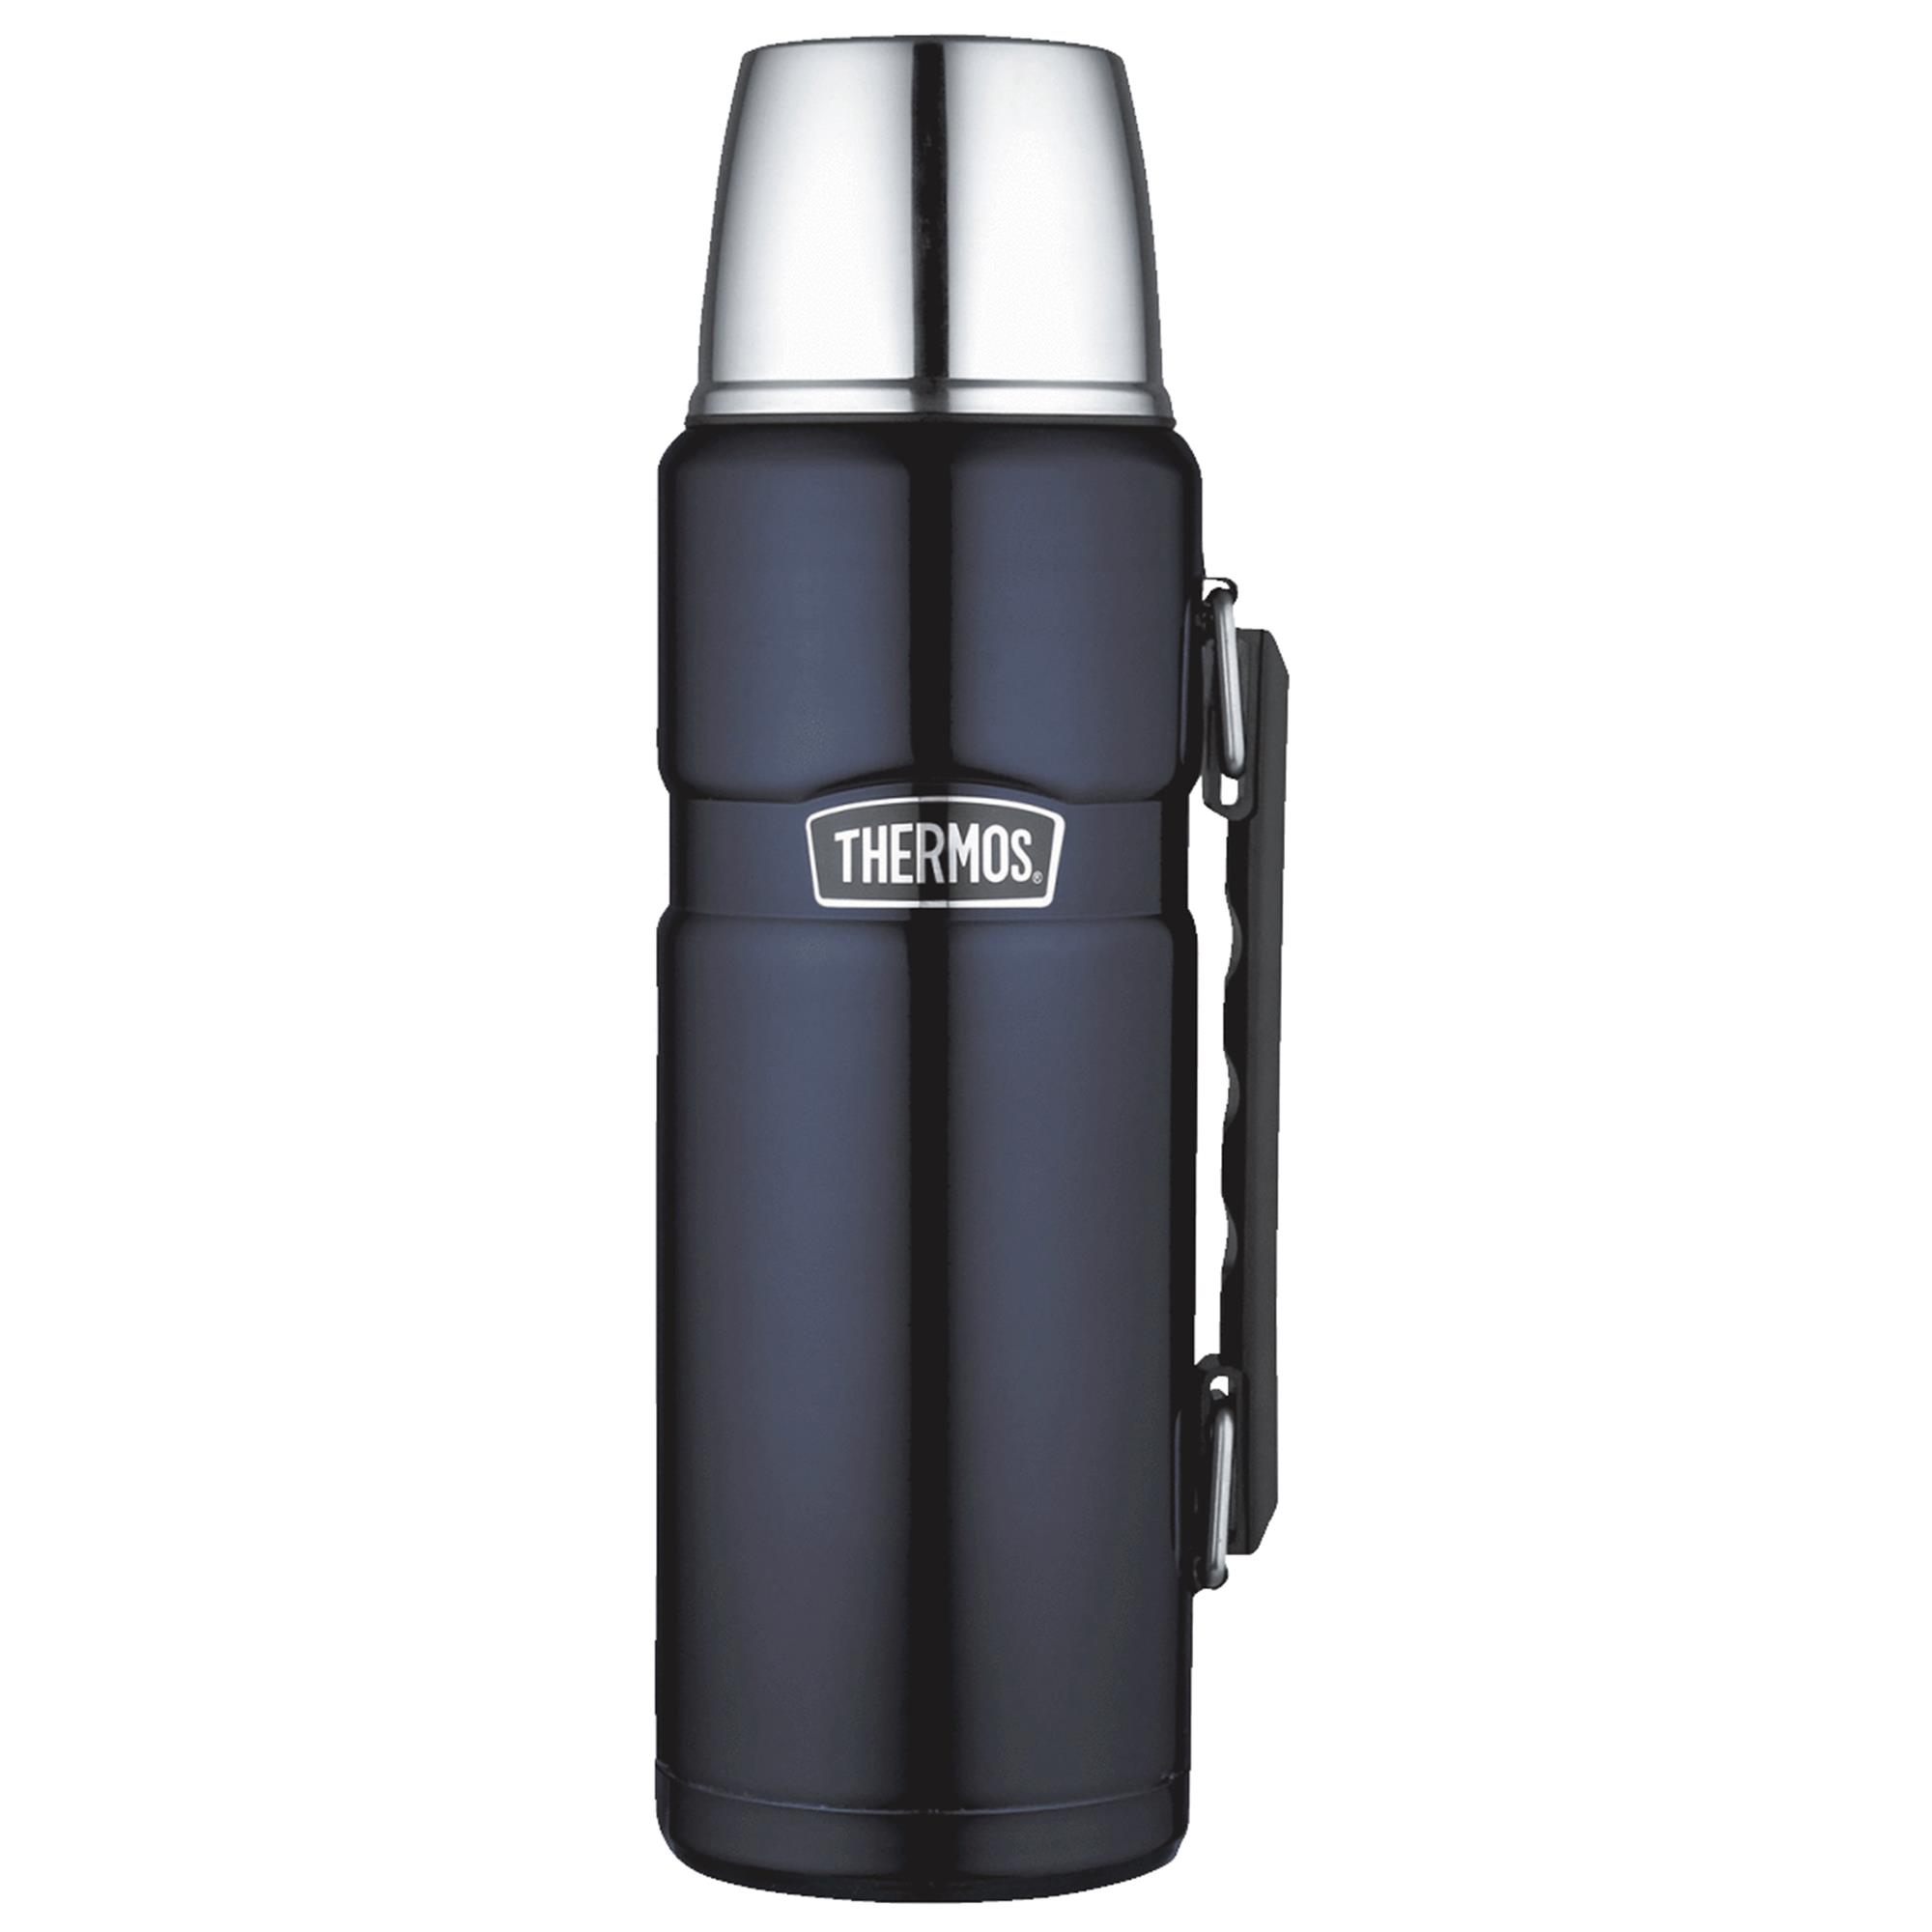 Thermos Stainless King Insulated Vacuum Bottle by Thermos